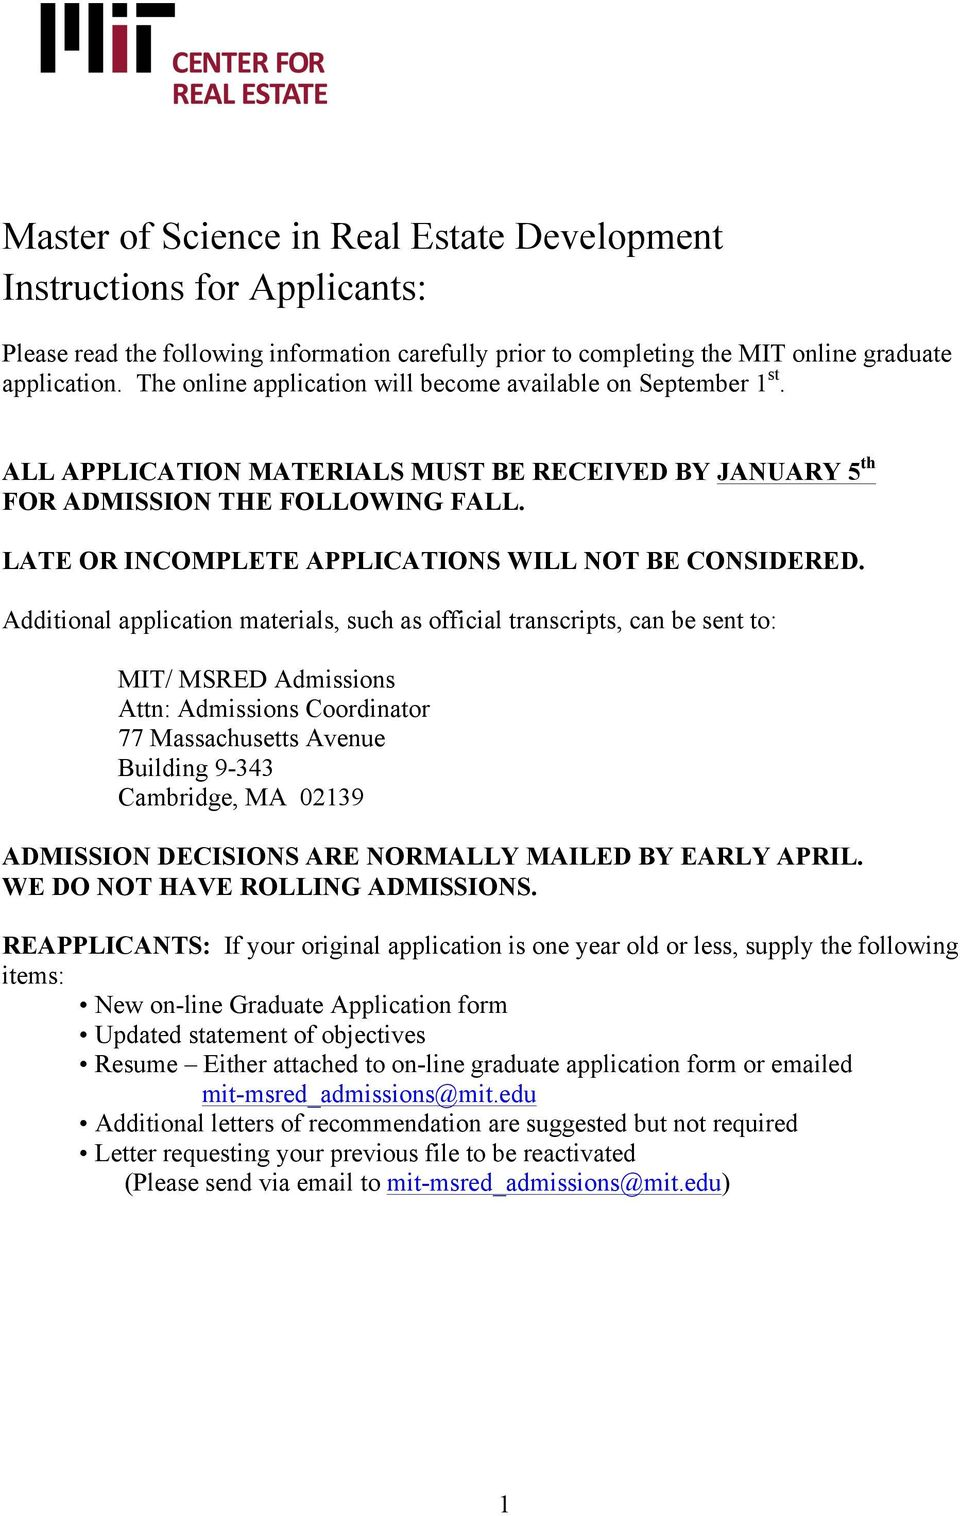 LATE OR INCOMPLETE APPLICATIONS WILL NOT BE CONSIDERED.